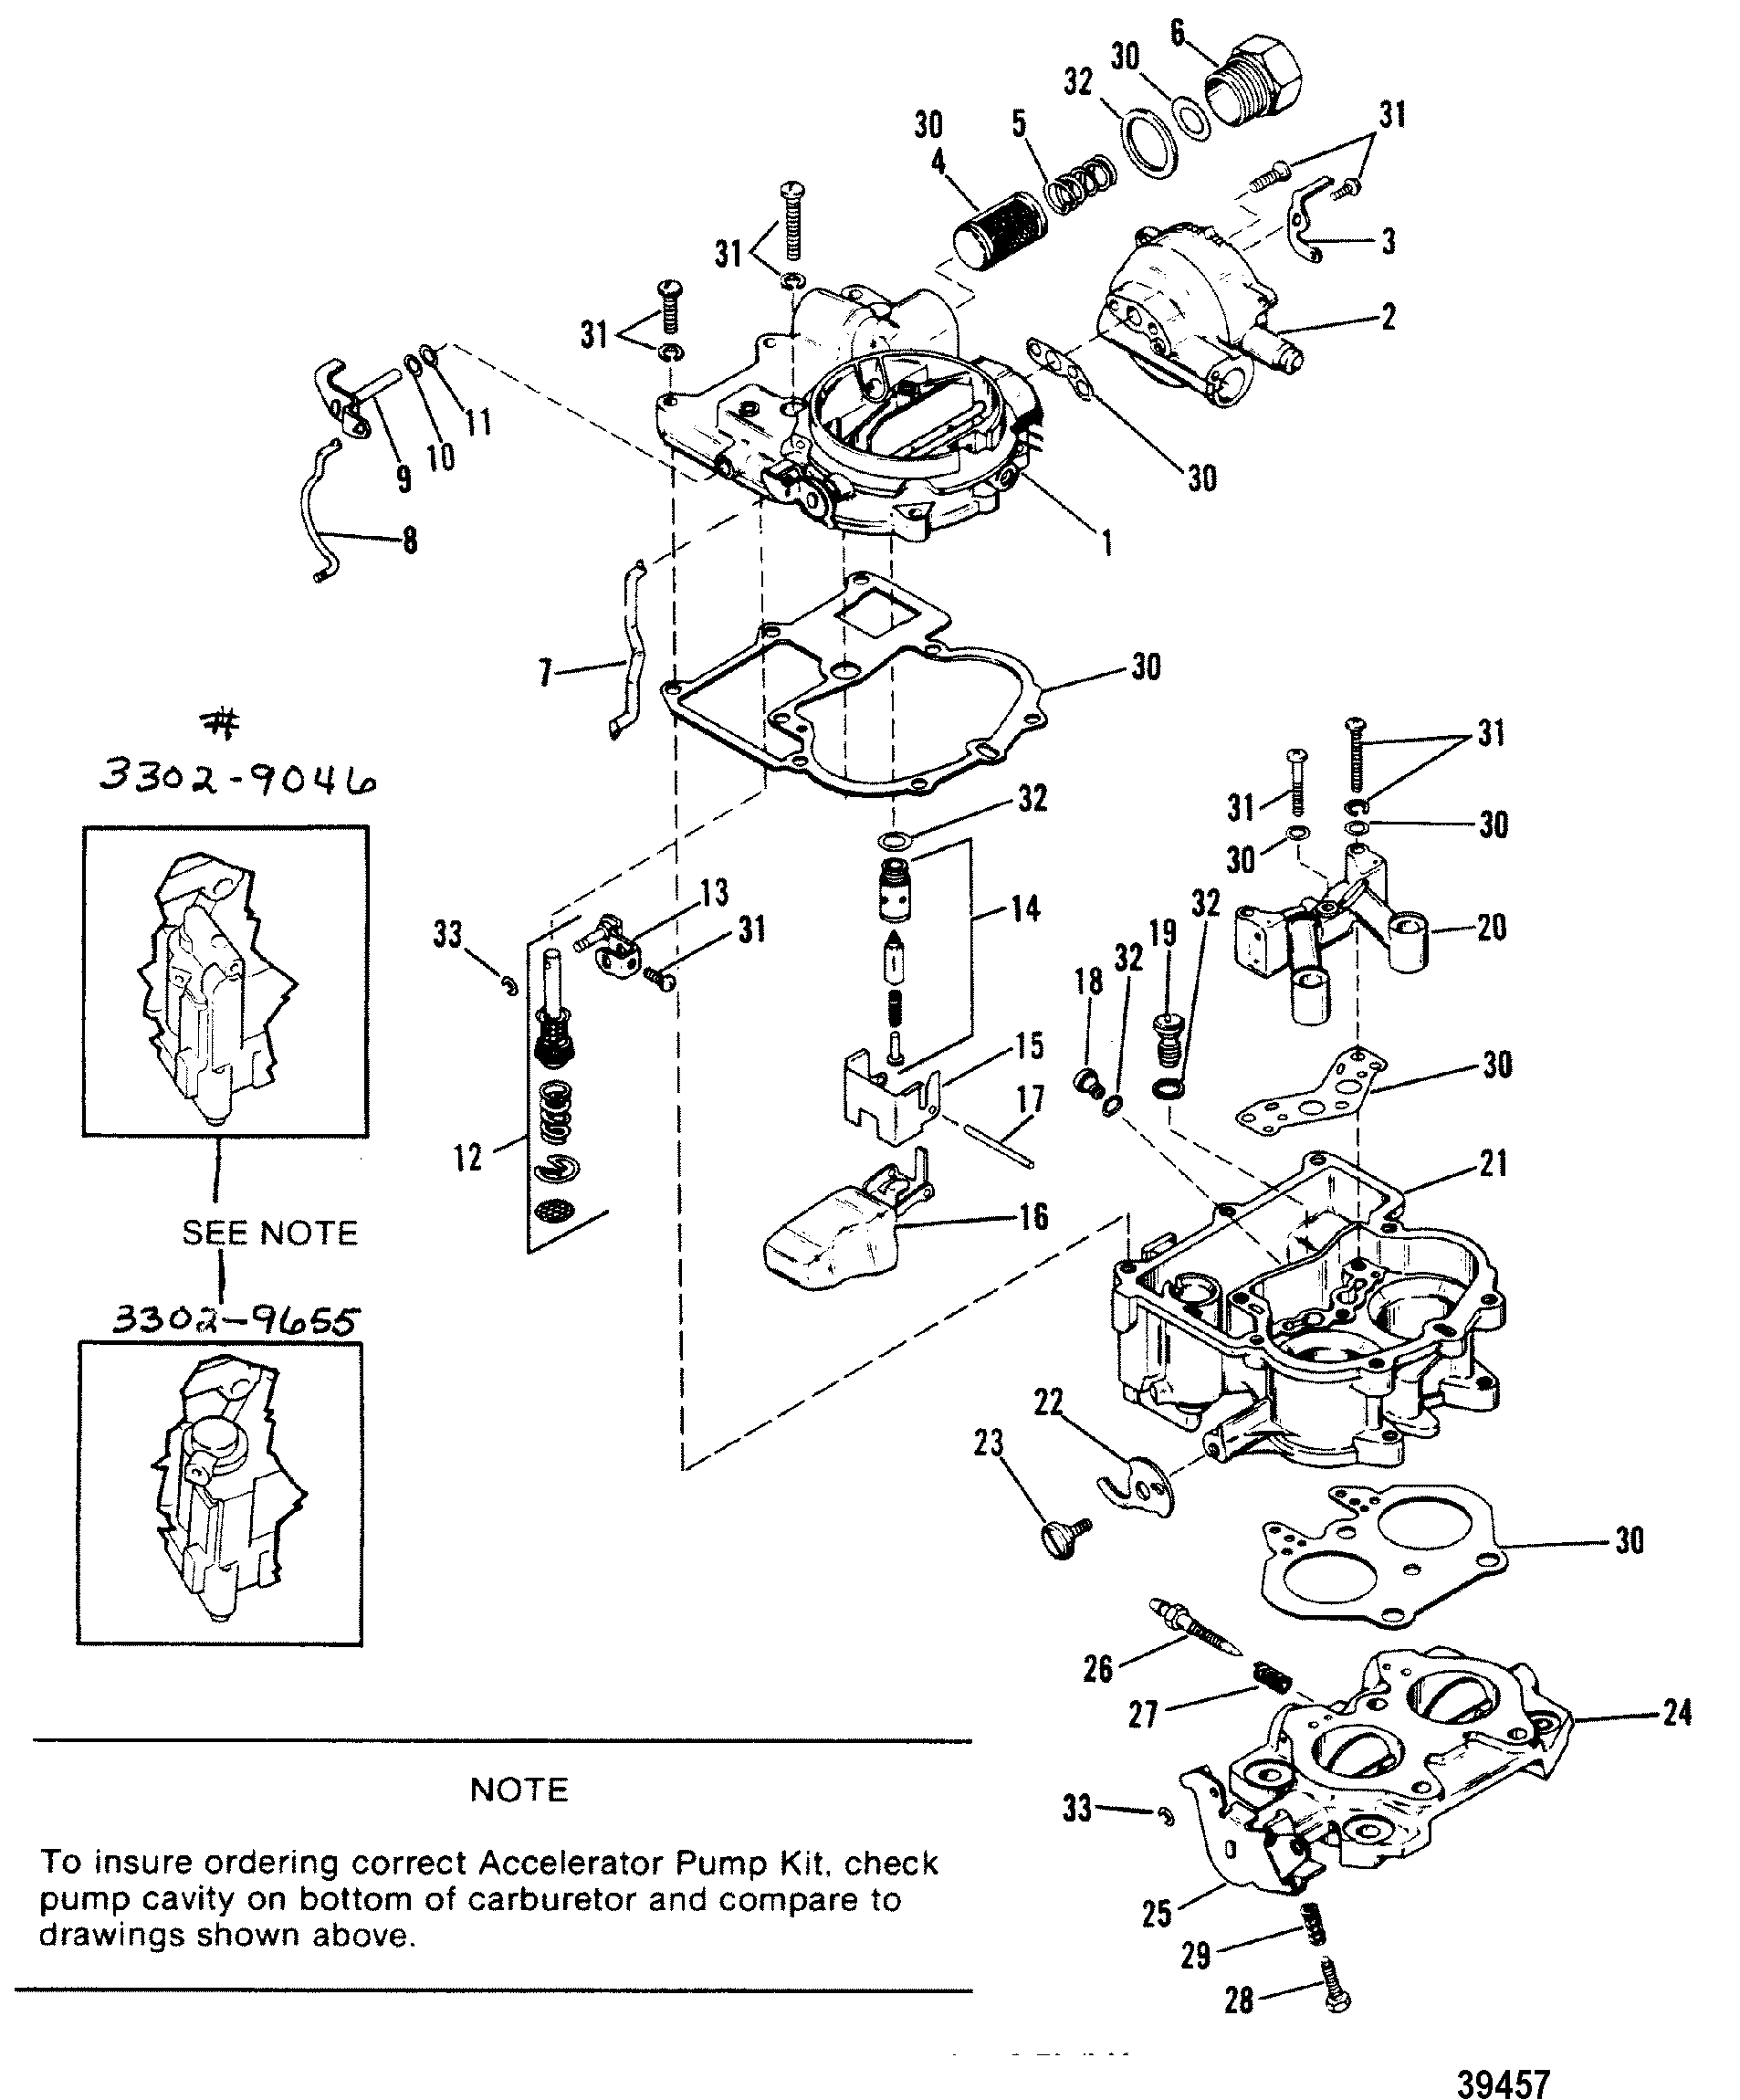 165 Mercruiser Engine Diagram Mercruiser 5.7 Wiring